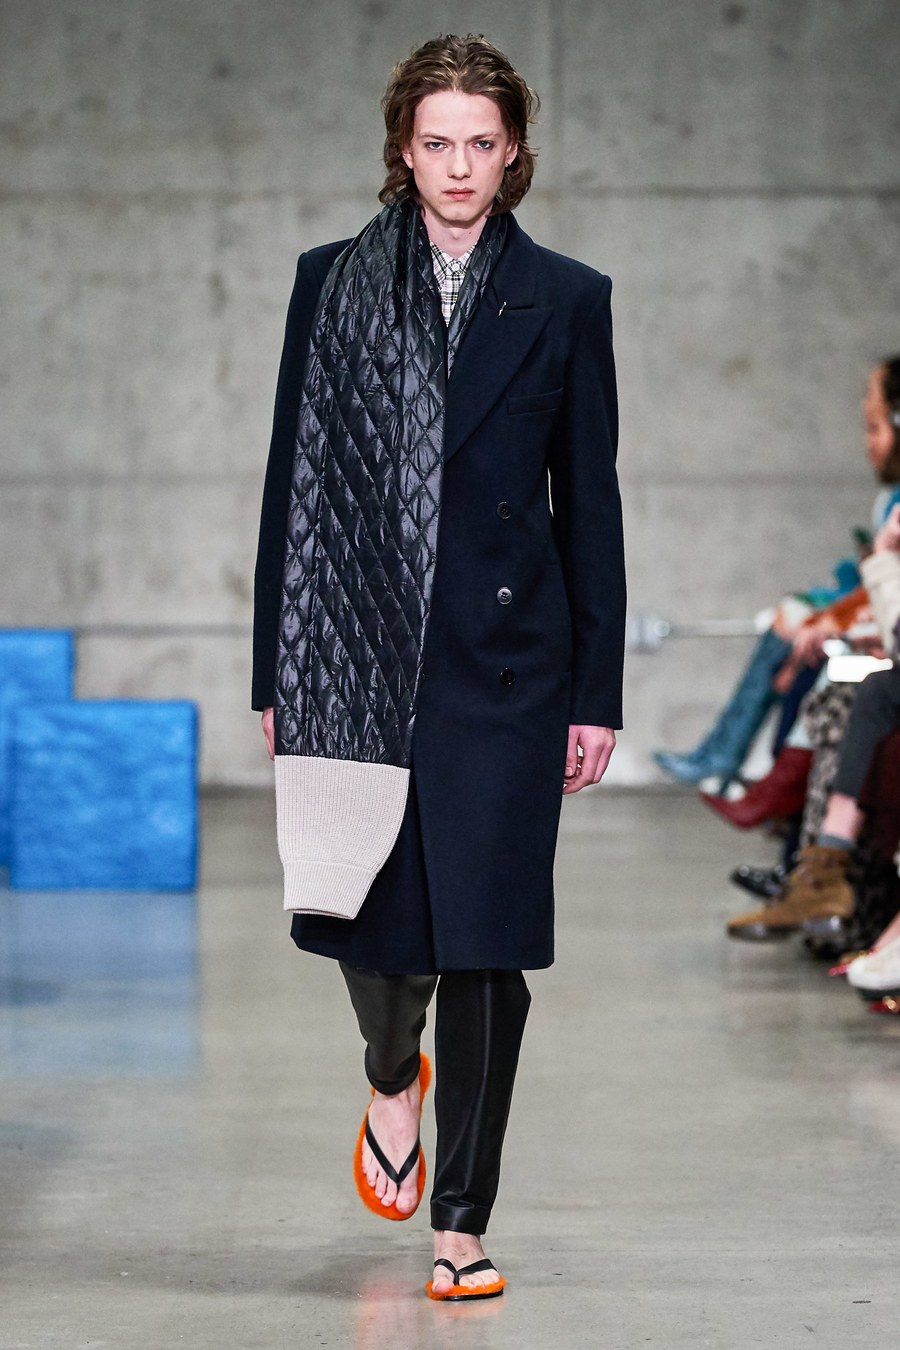 Willem het Hart for Tibi - New York Fashion Week 2019